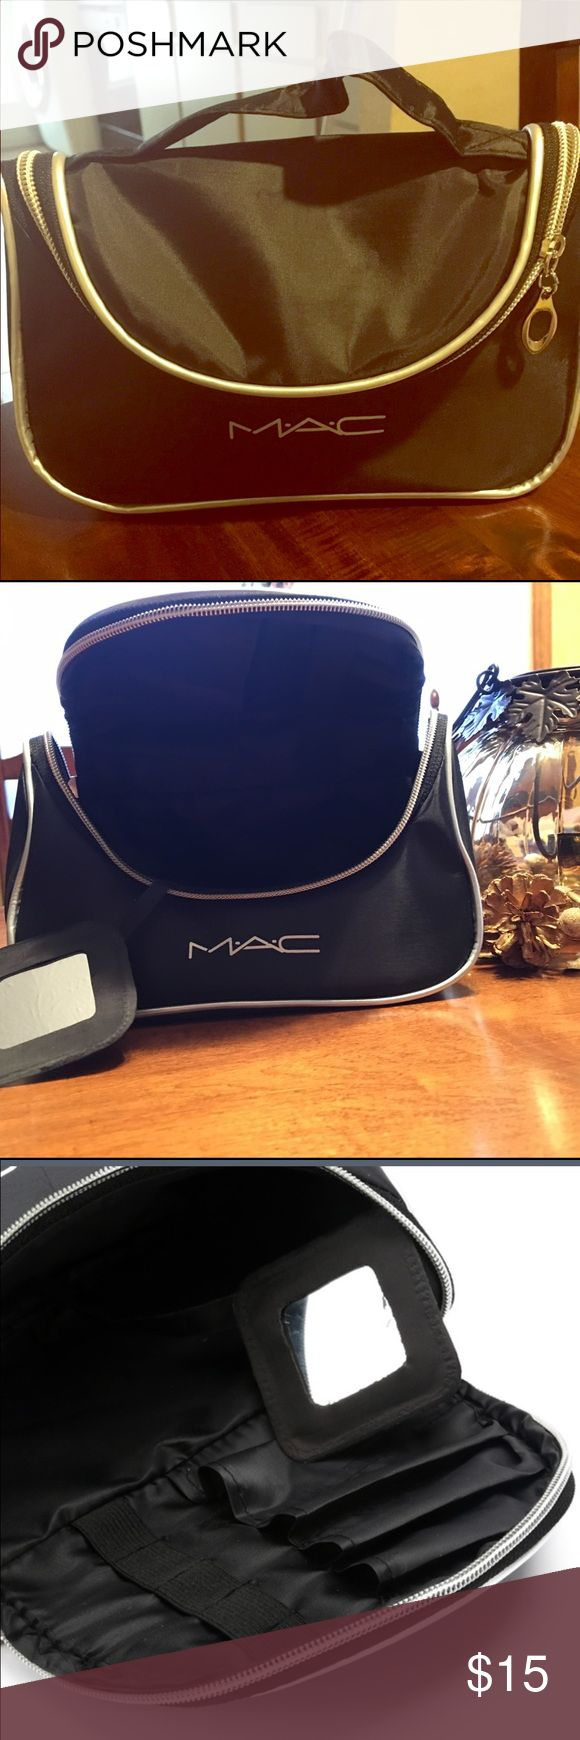 Little MAC Makeup bags This makeup bag by MAC is a combo of Cute and Classy. It's a black waterproof type of material with silver piping around the entire perimeter of the bag. It measures 4 inches deep by 8 inches in length. Attached mirror, 6 slots for brushes and band separators for lipsticks or makeup tools. A must have bag for you makeup collection. MAC Cosmetics Bags Cosmetic Bags & Cases